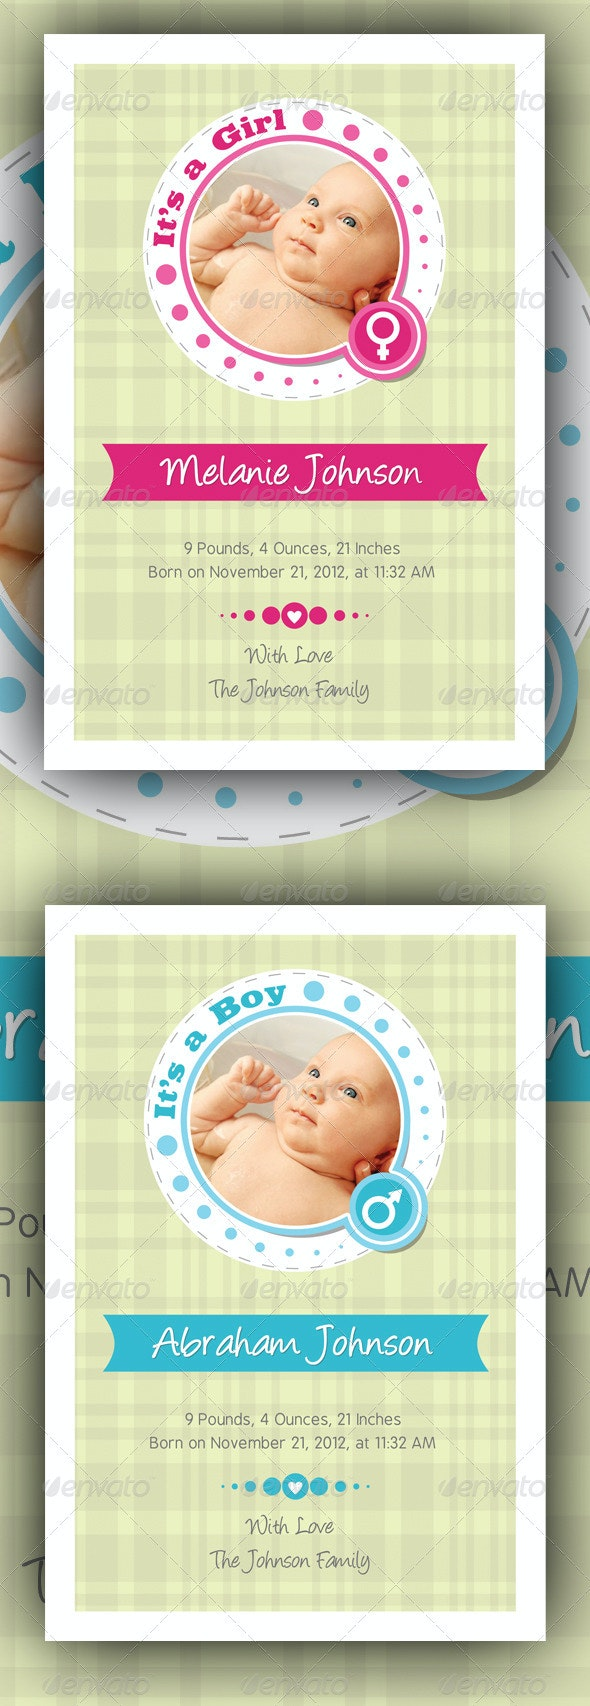 Baby Announcement Cards v2 - Family Cards & Invites